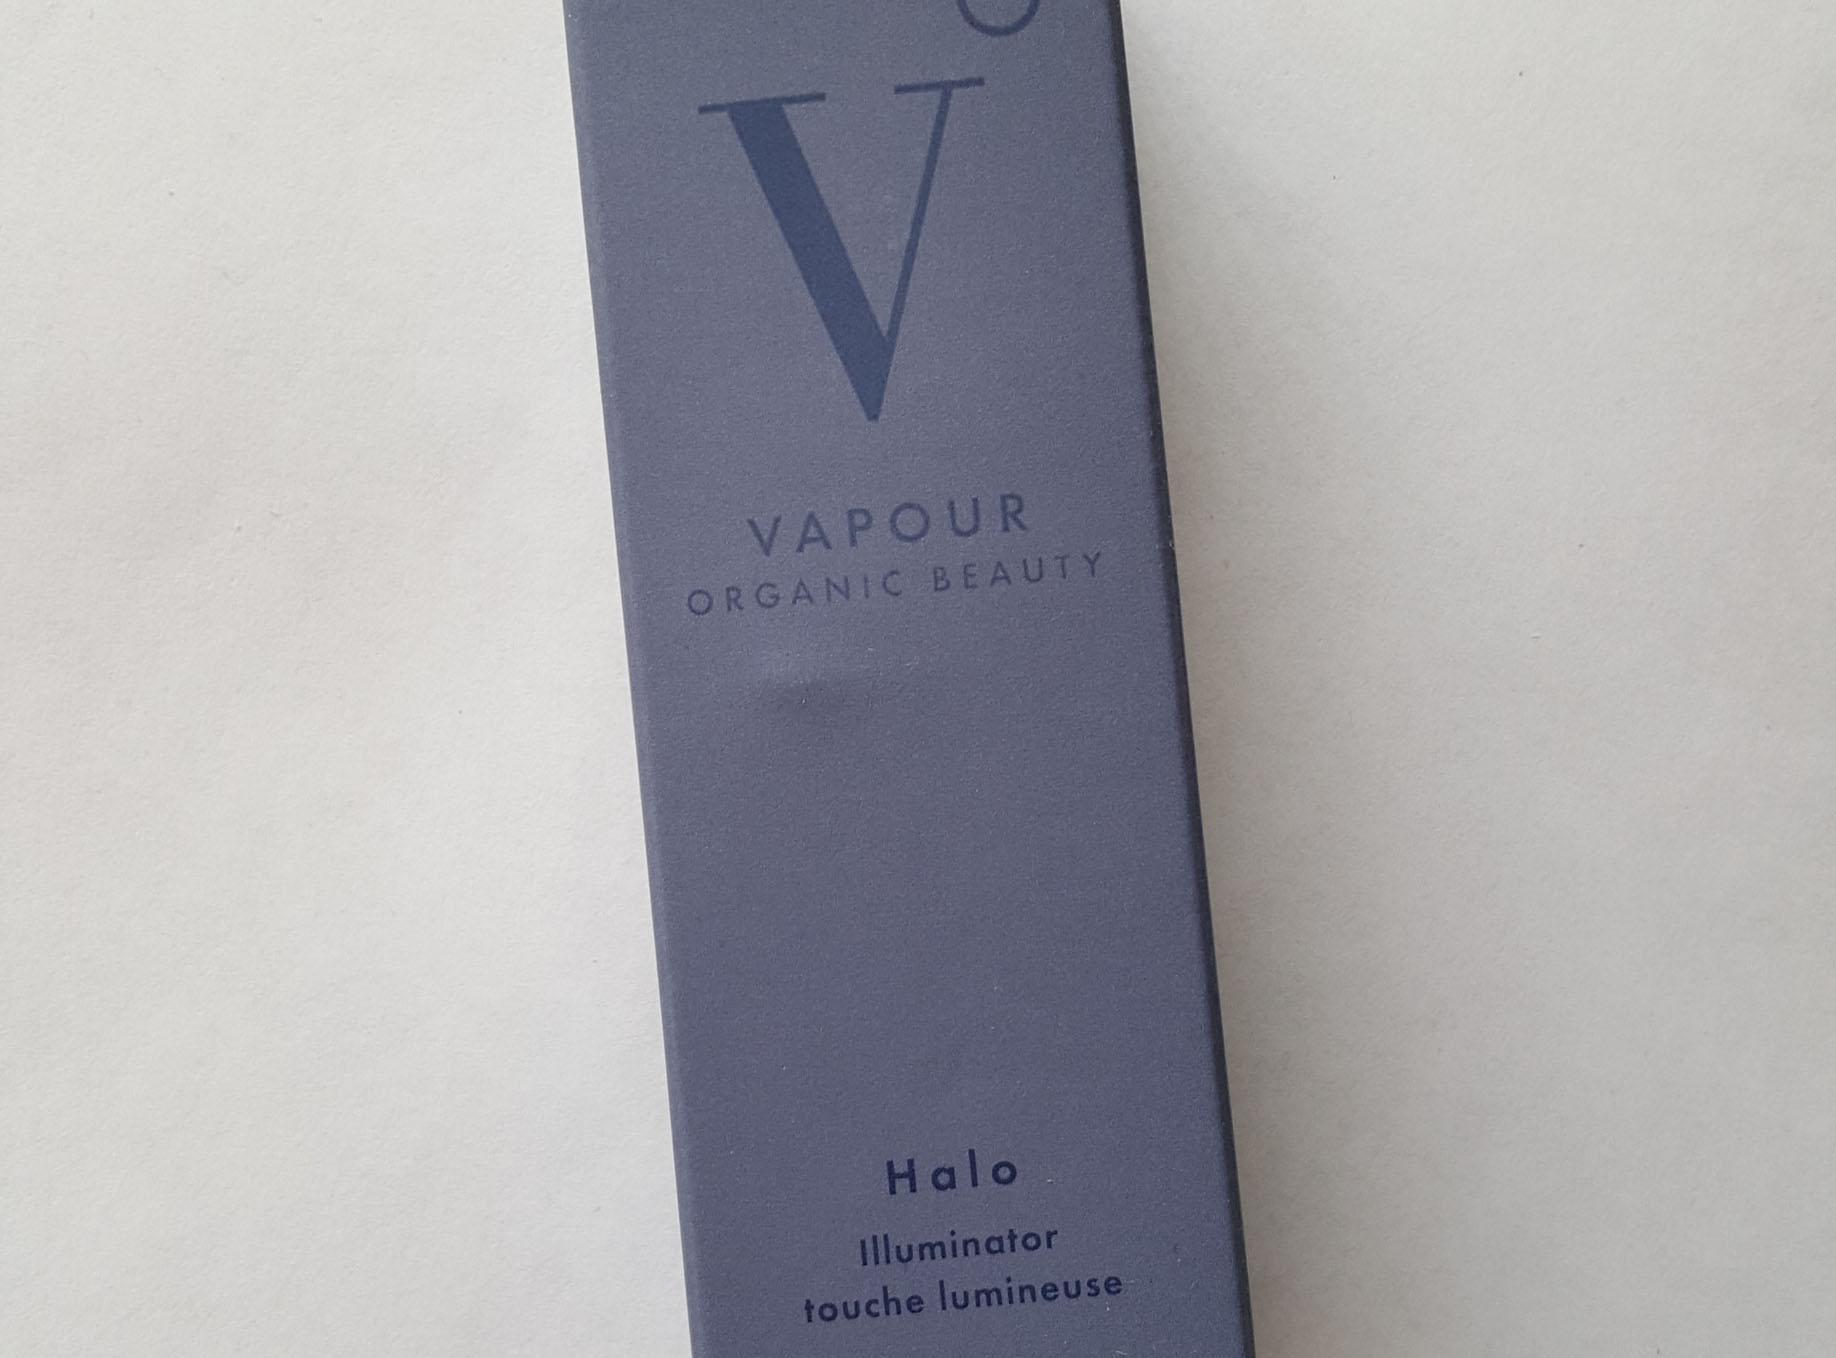 Vapour Organic Beauty Halo Illuminator in Moonlight 720 – UNOPENED